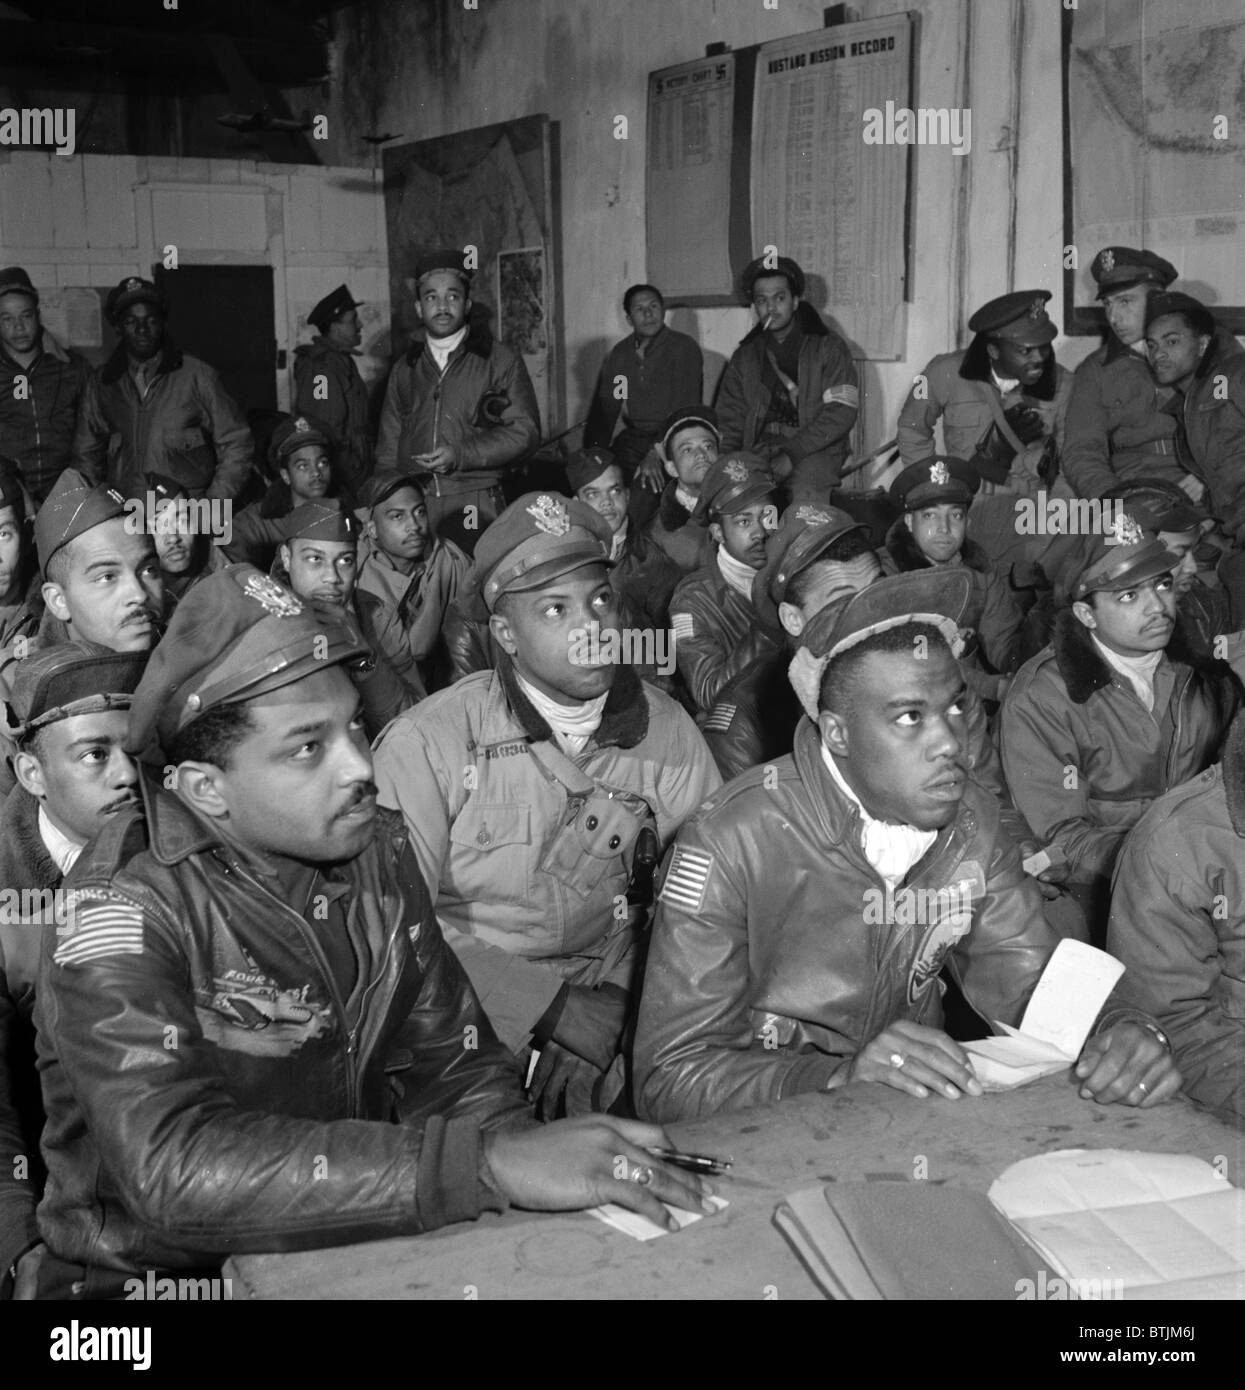 Tuskegee airmen attend a briefing in Ramitelli, Italy, March 1945. Photograph by Toni Frissell. - Stock Image